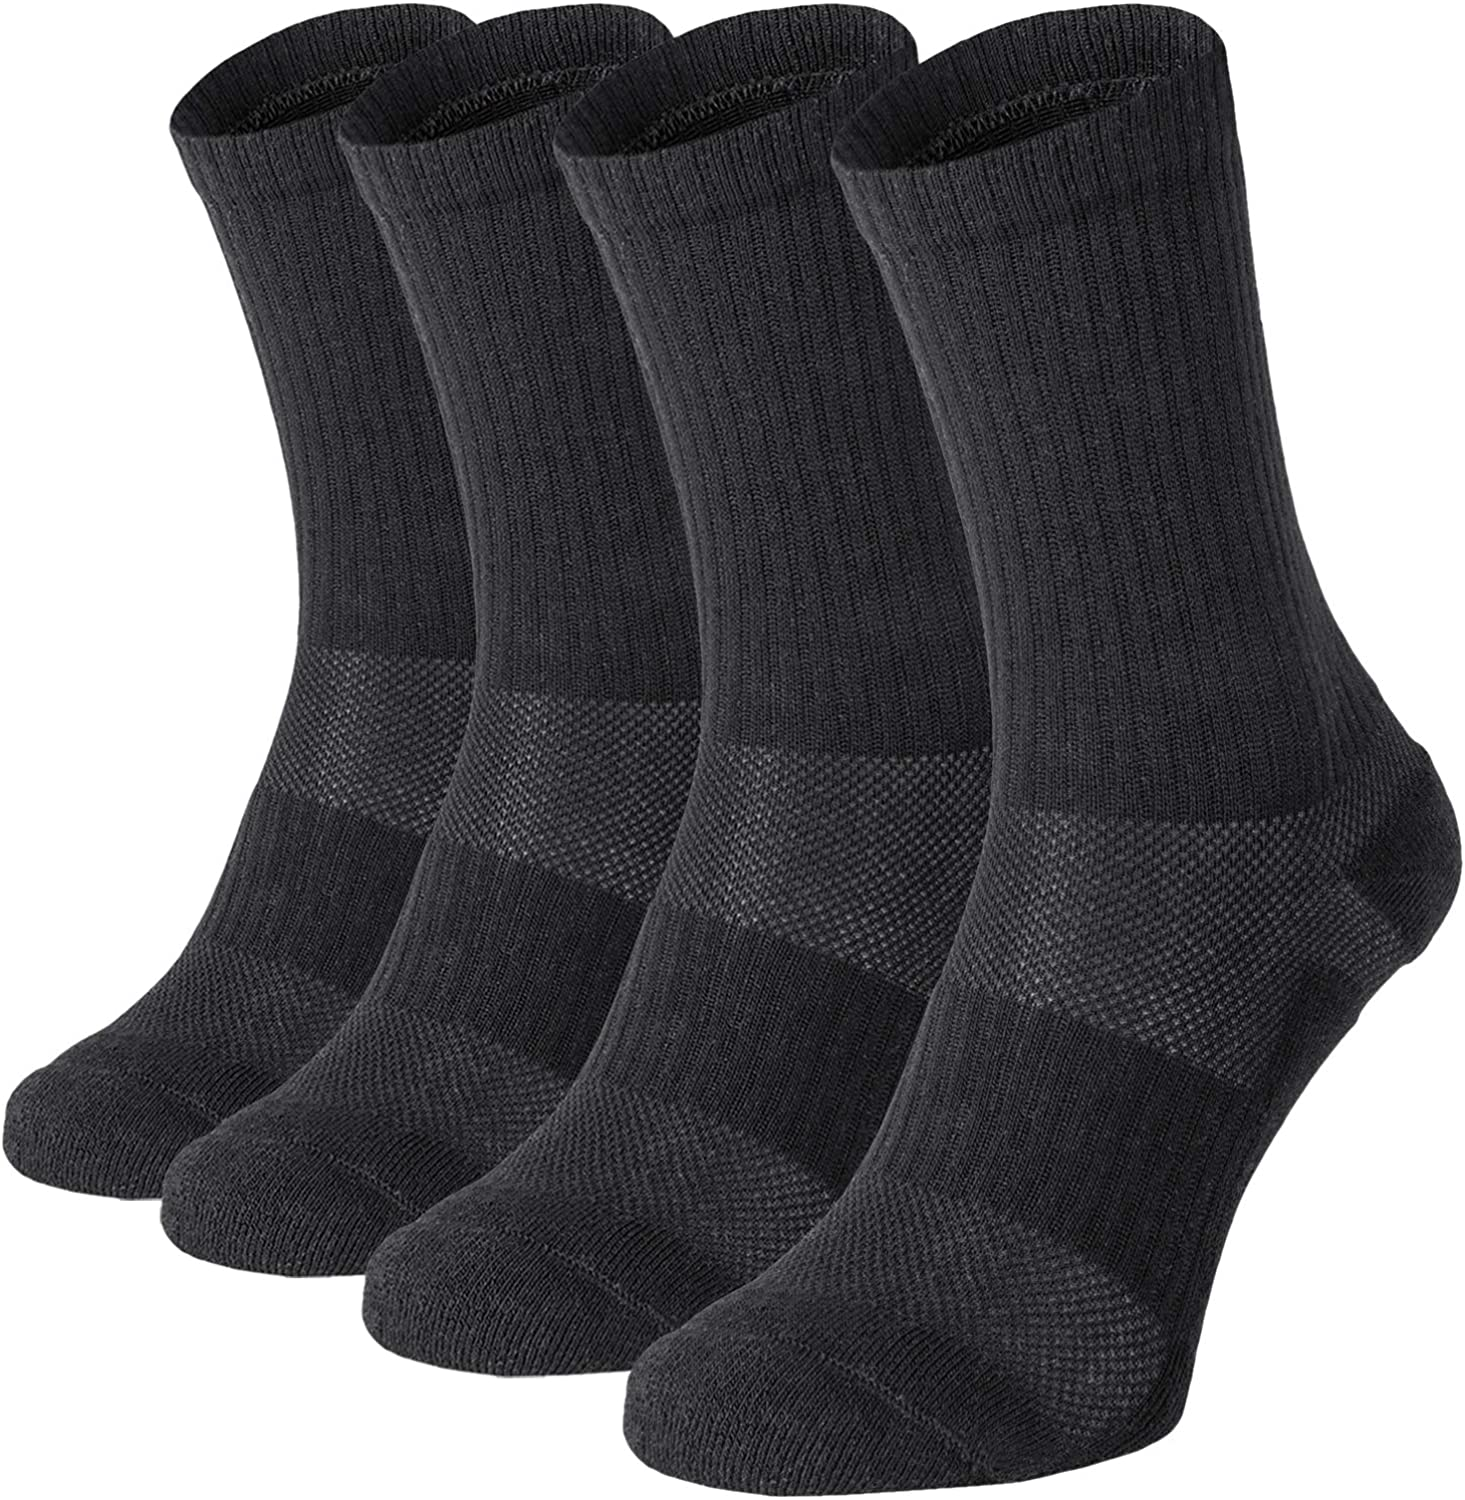 281Z Military Cotton Micro Crew Boot Socks - Cushioned Sole - Moisture Wicking